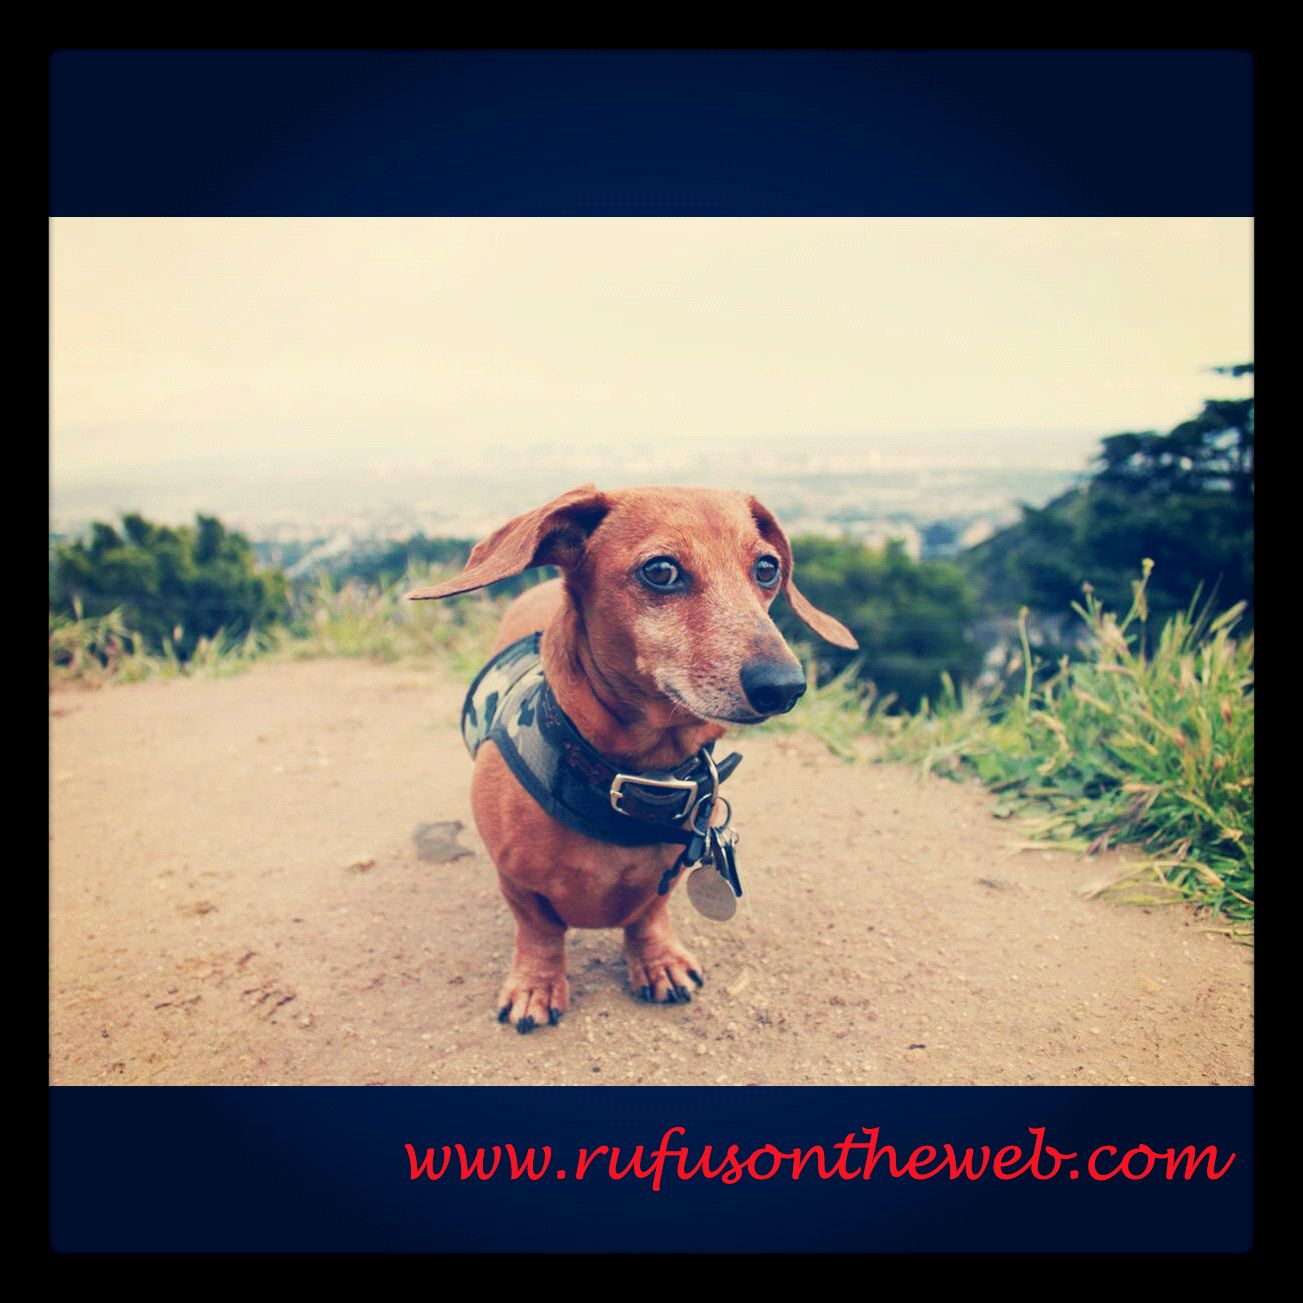 Rufus is wishing everyone a wienerful Wednesday. http://wp.me/p27Fw1-gs #dachshund #doxies #doxiepicnic